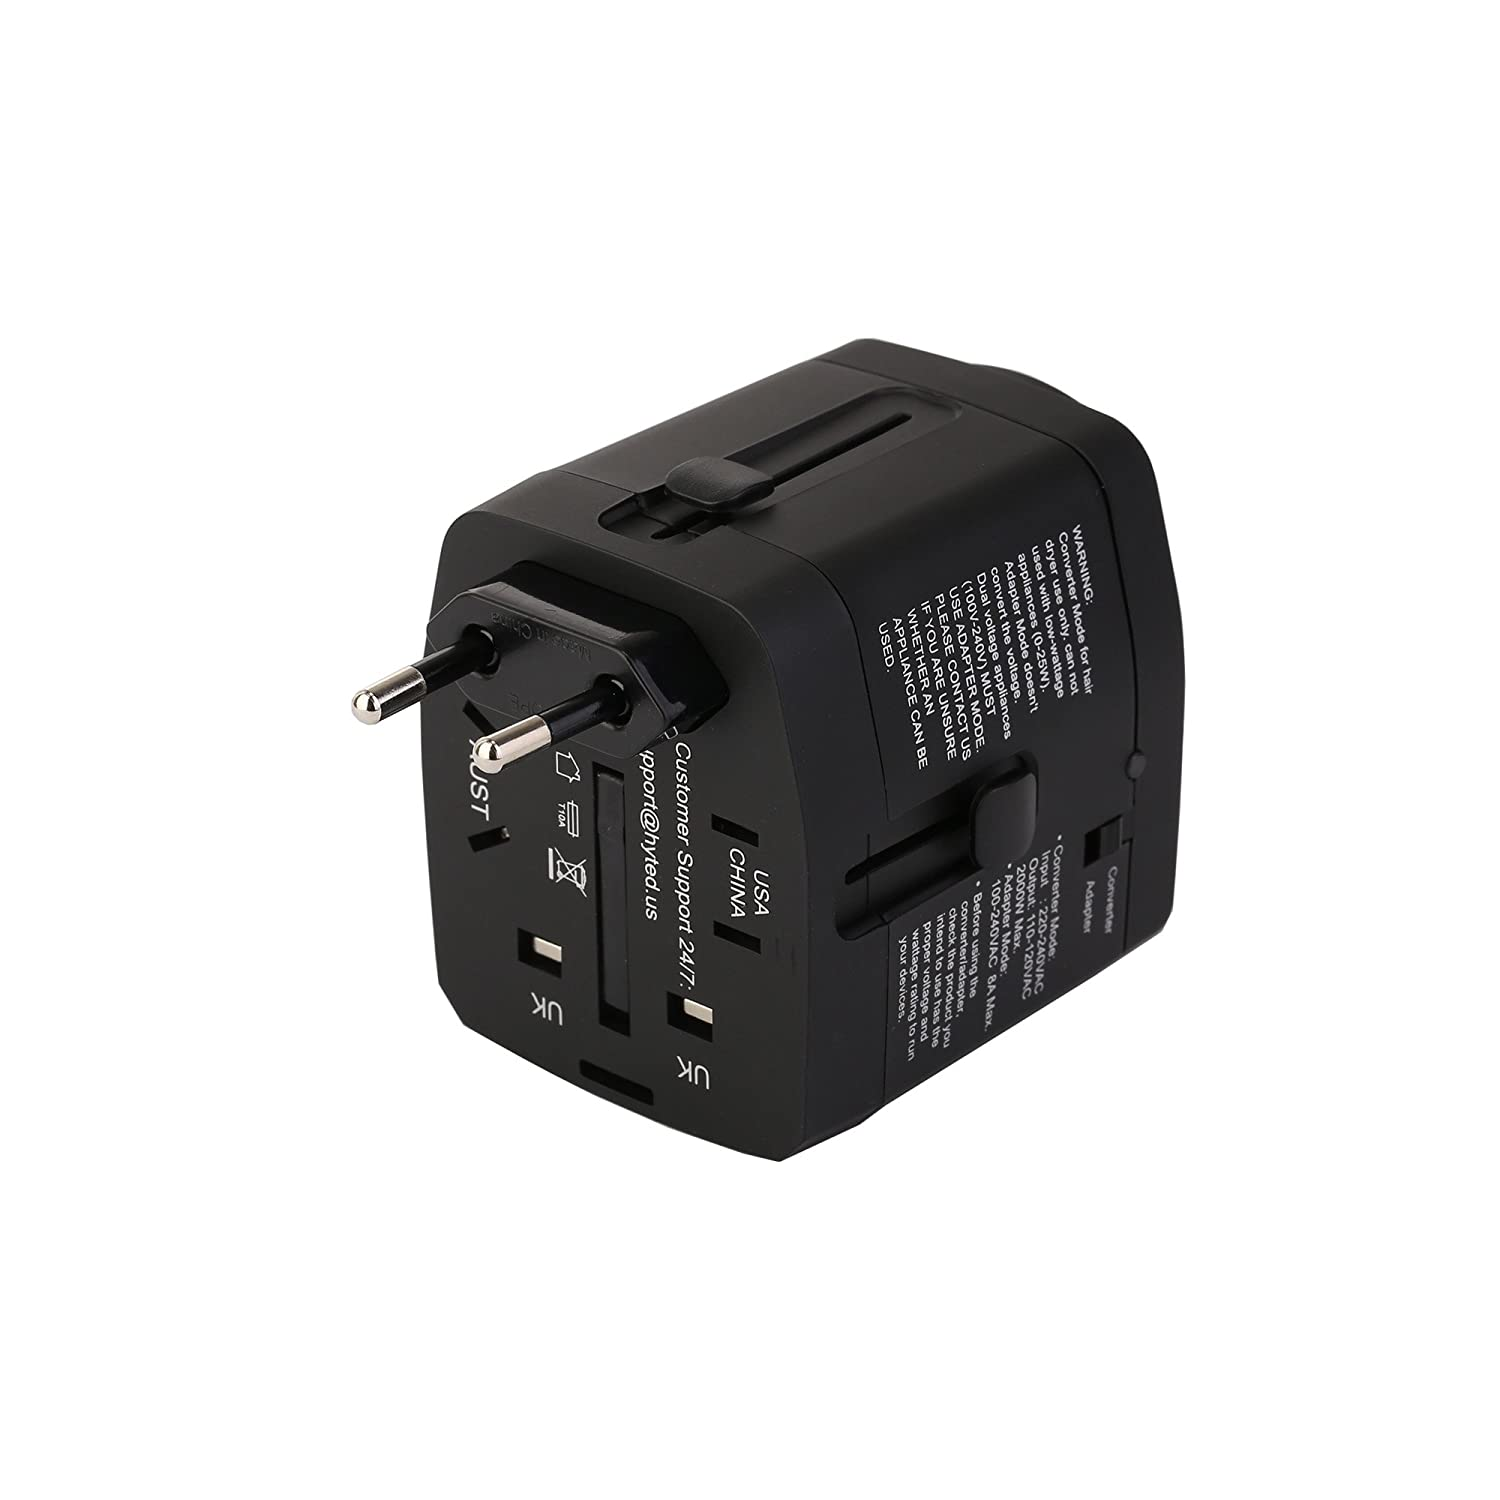 Amazon.com: HYTED 2000Watts Travel Adapter and Converter ...